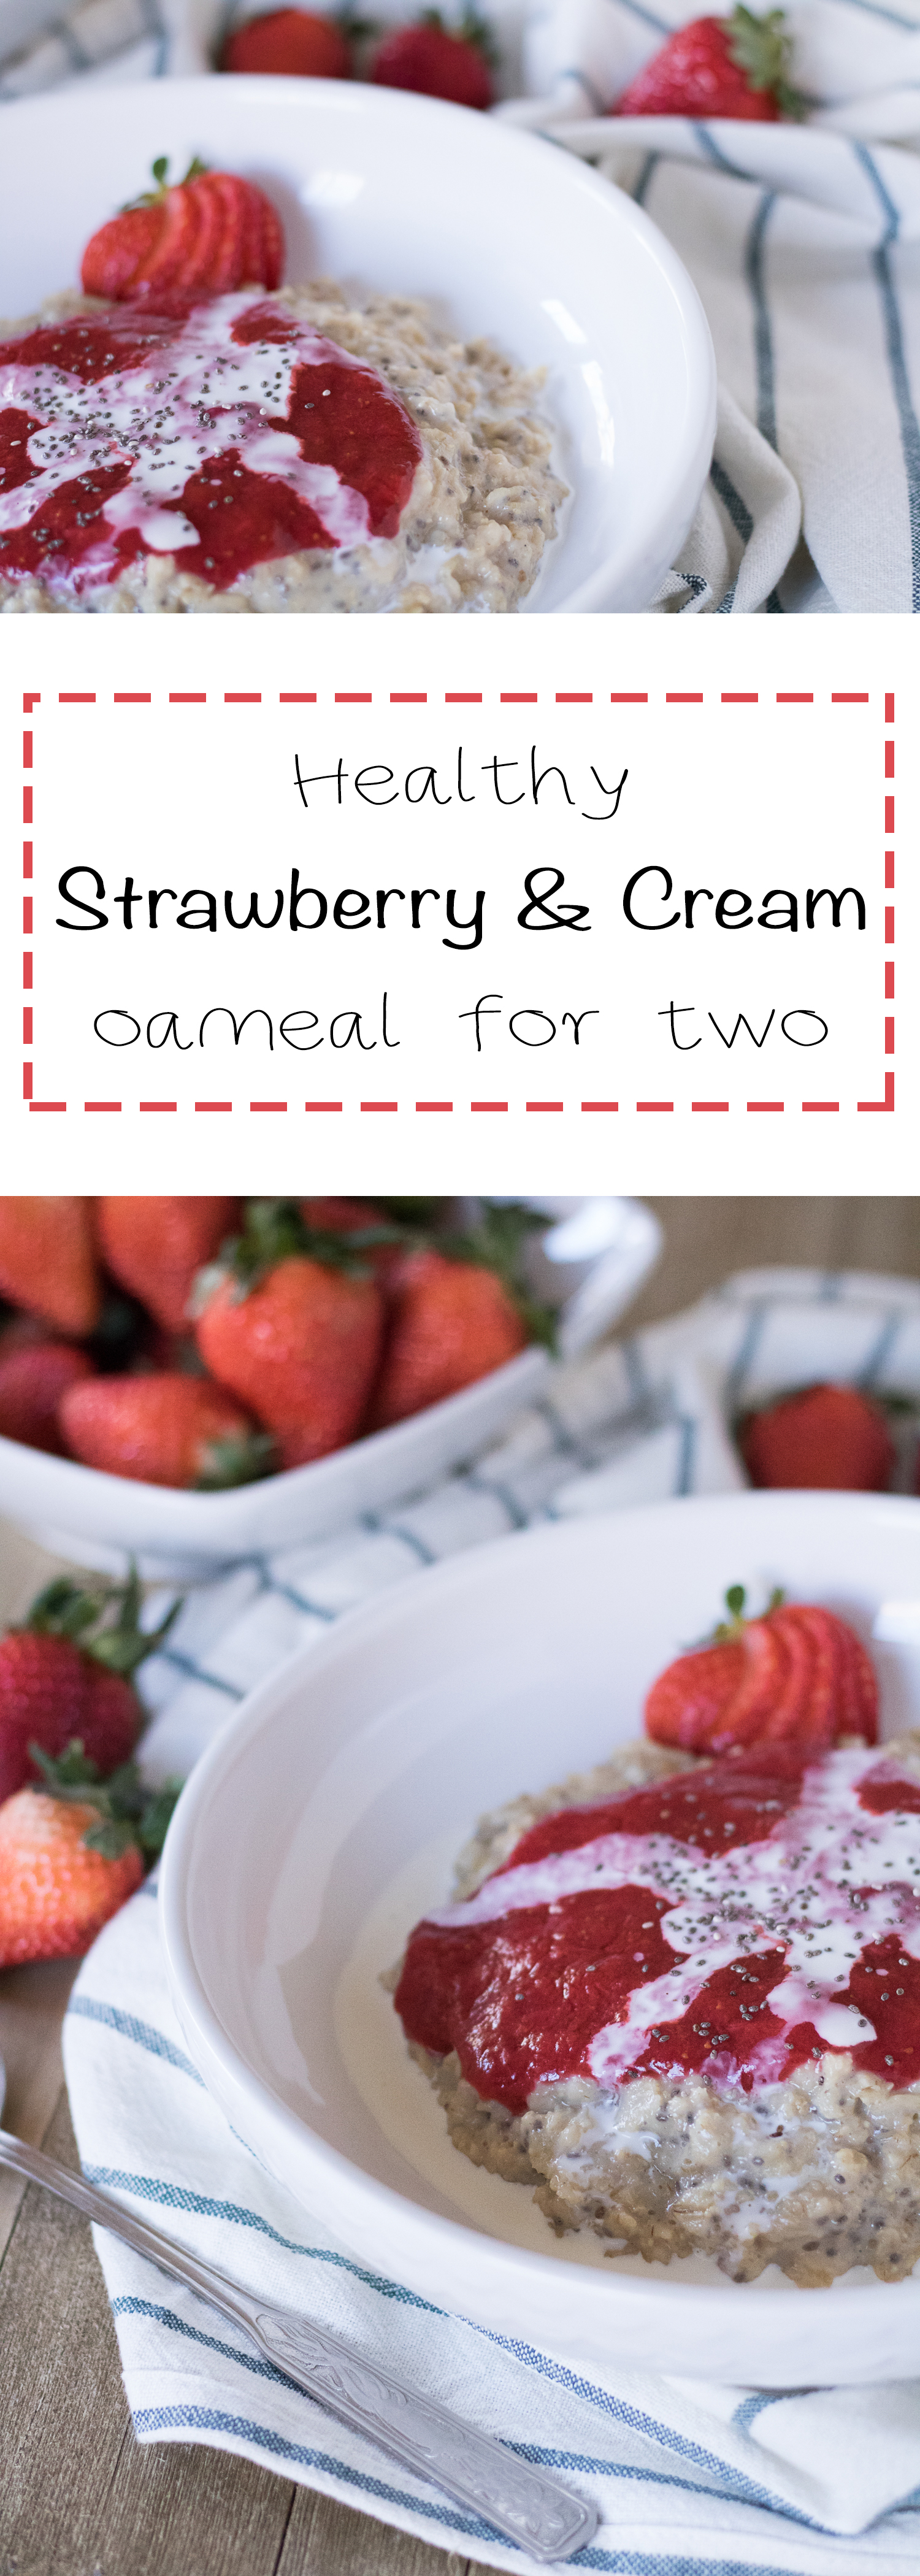 Healthy strawberry and cream oatmeal for two